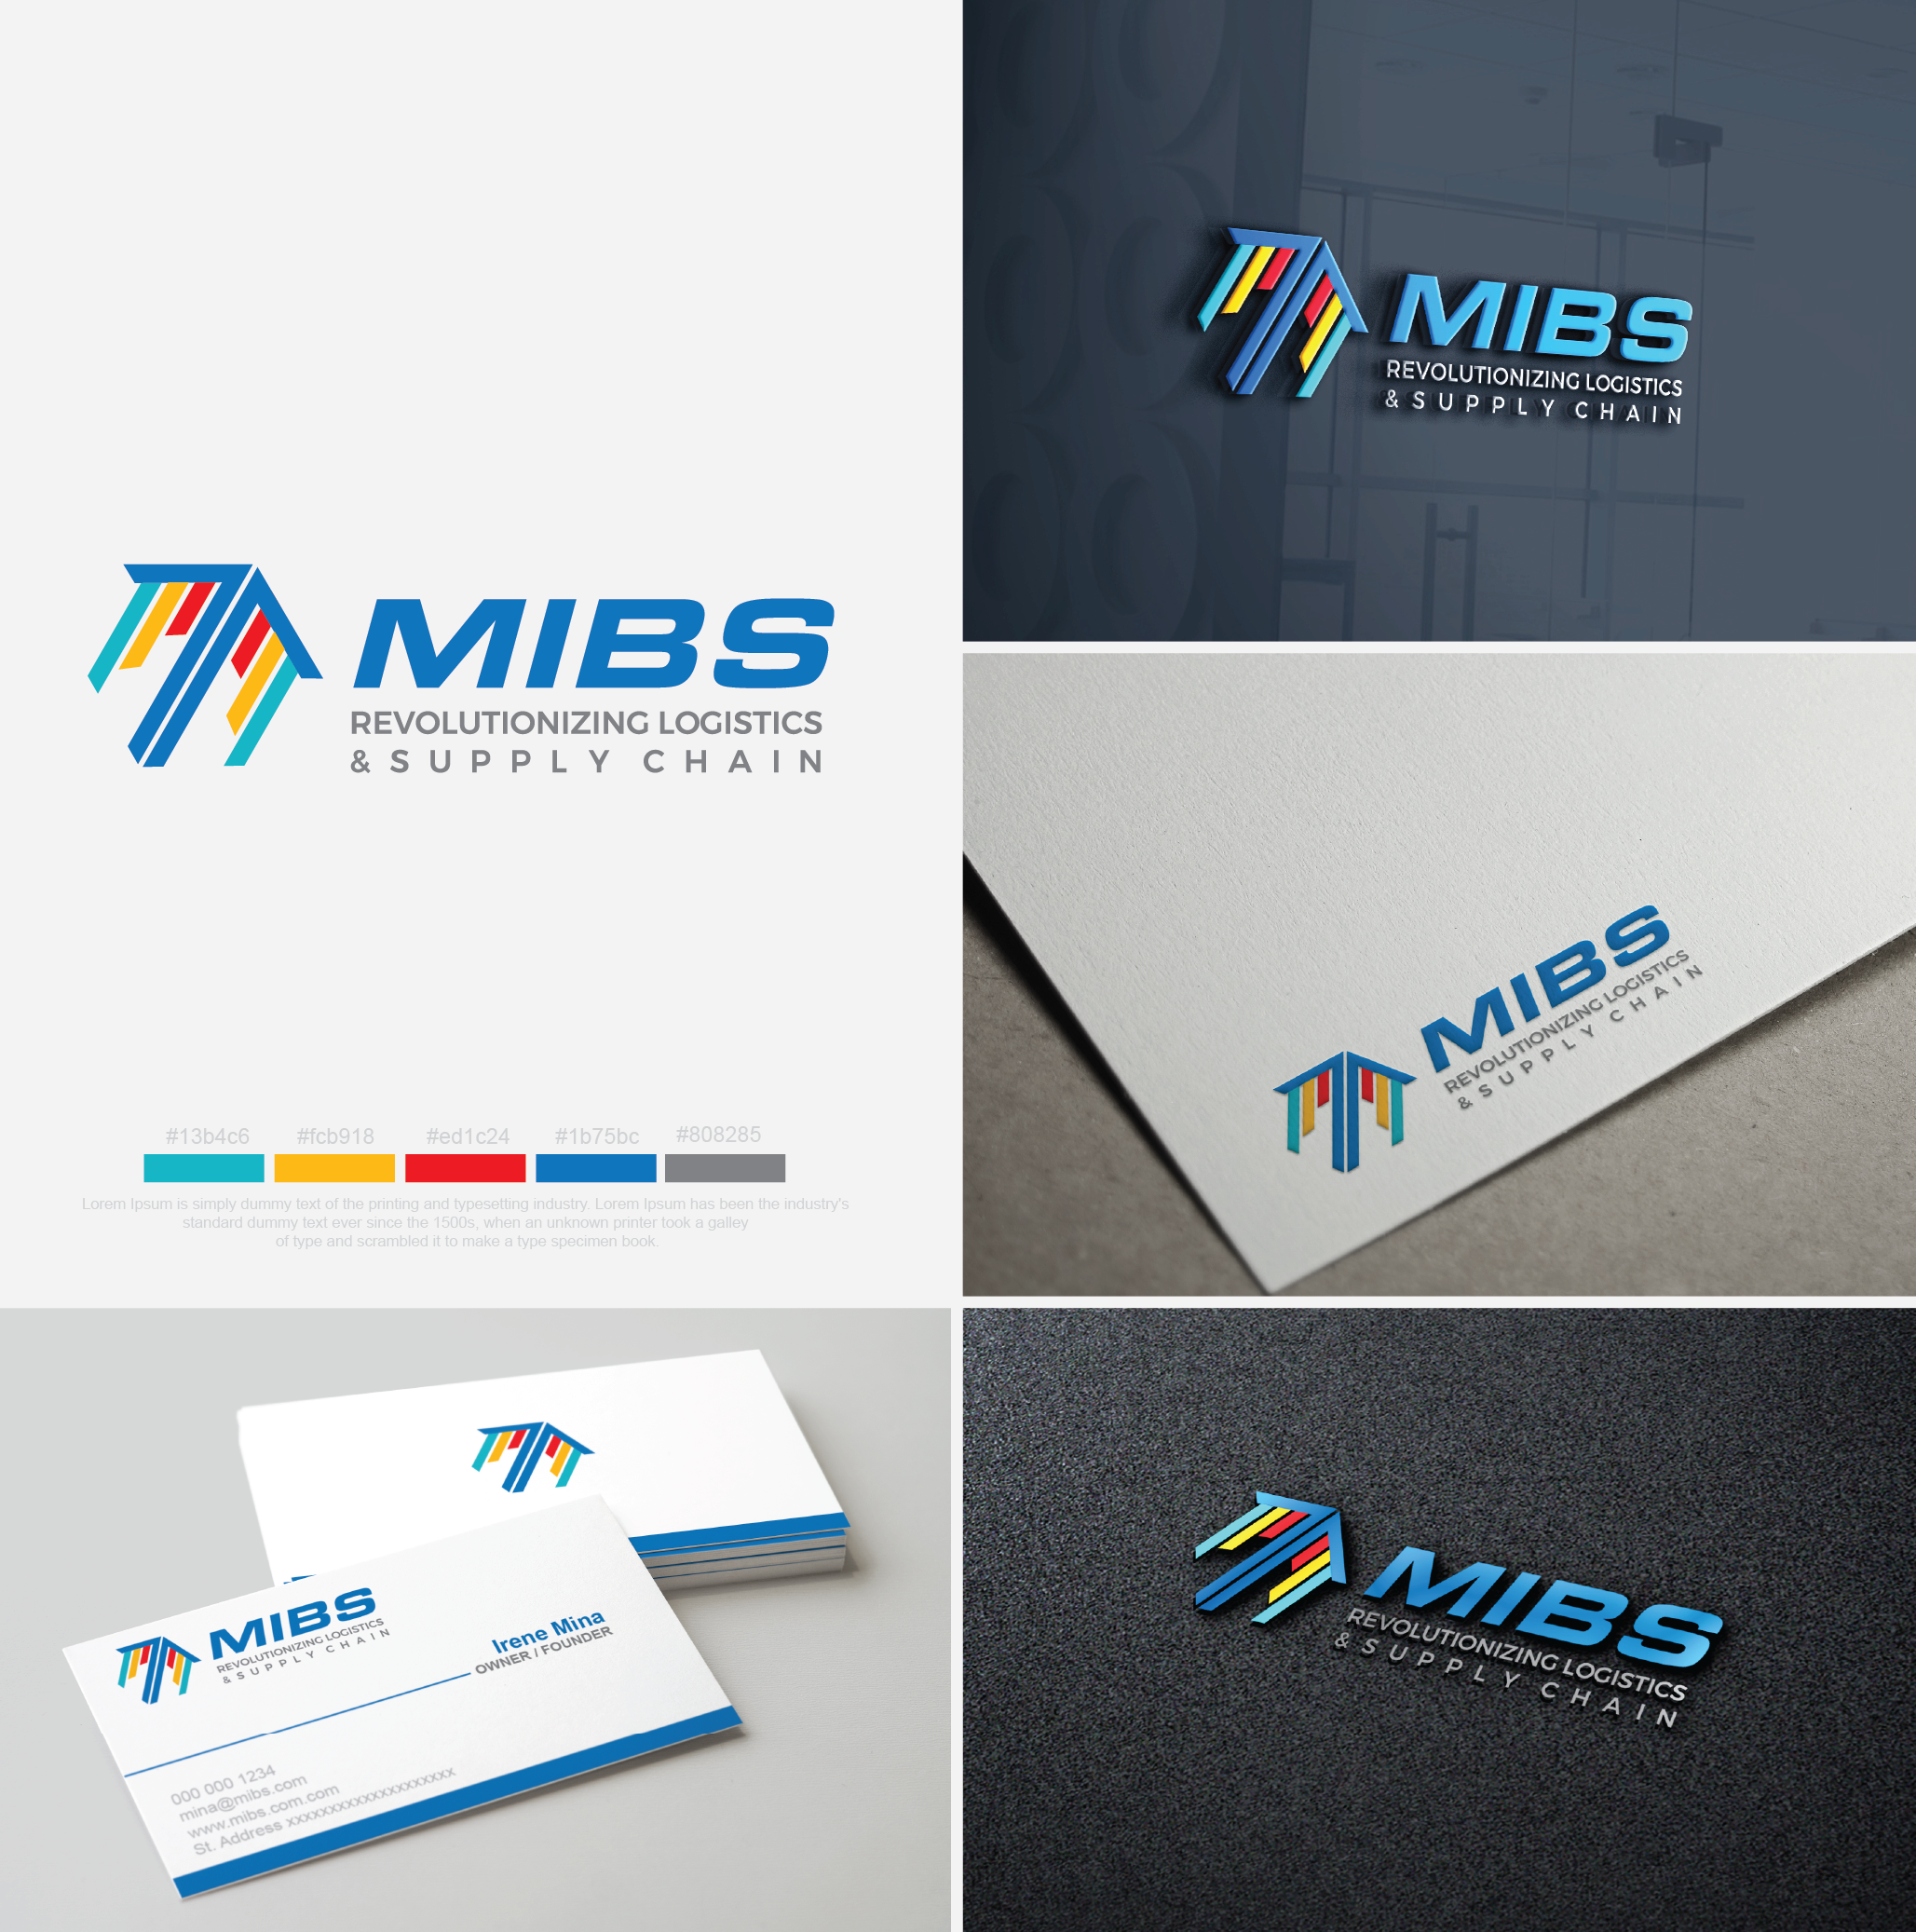 Business Consulting Logo And Business Card Design Required By Mibs Ad Logo Paid Consulting Busi Logo Design Contest Business Card Design Logo Design